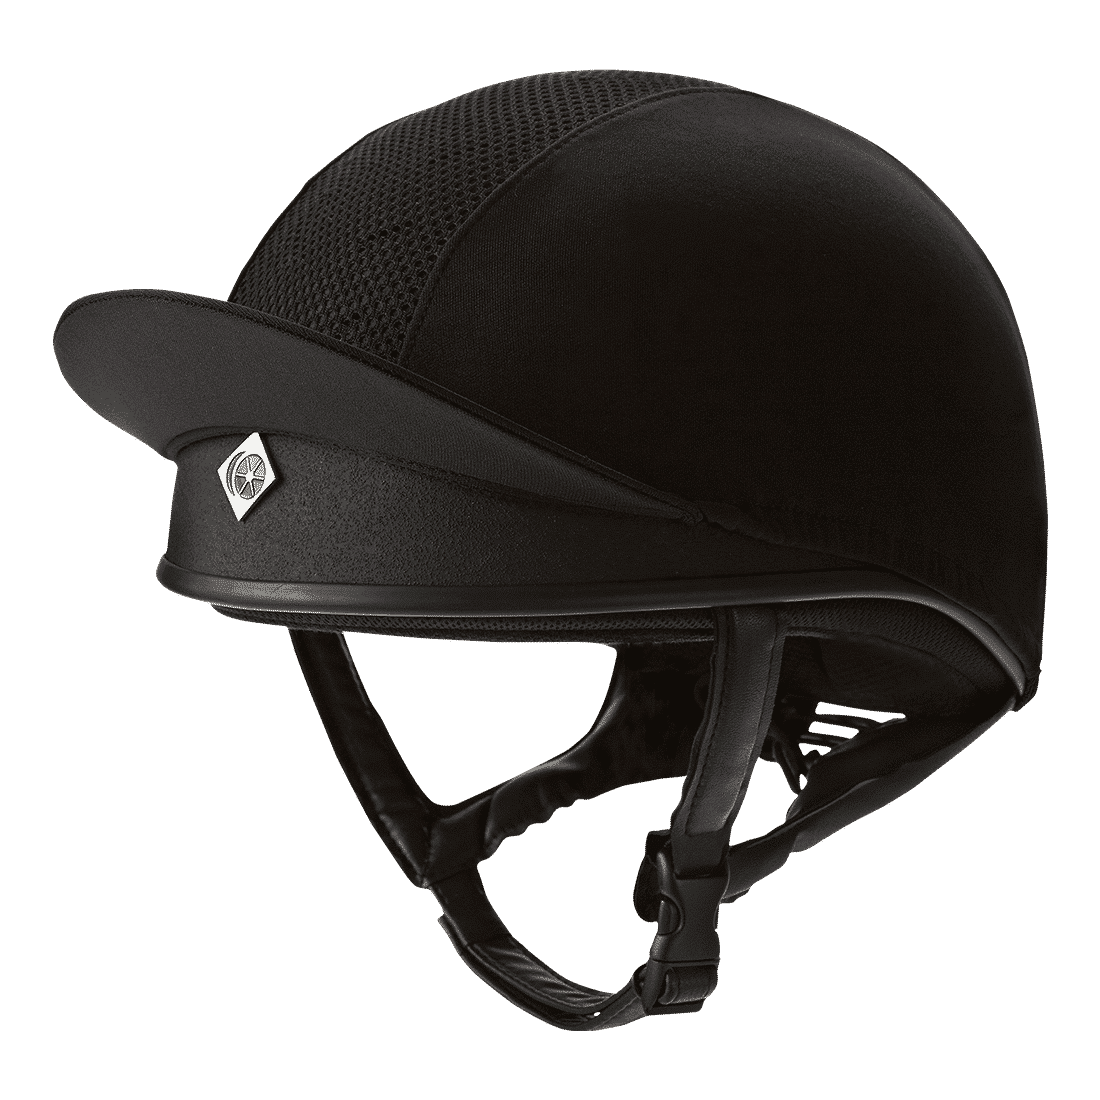 Charles Owen PRO 2 Plus Skull Riding Hat